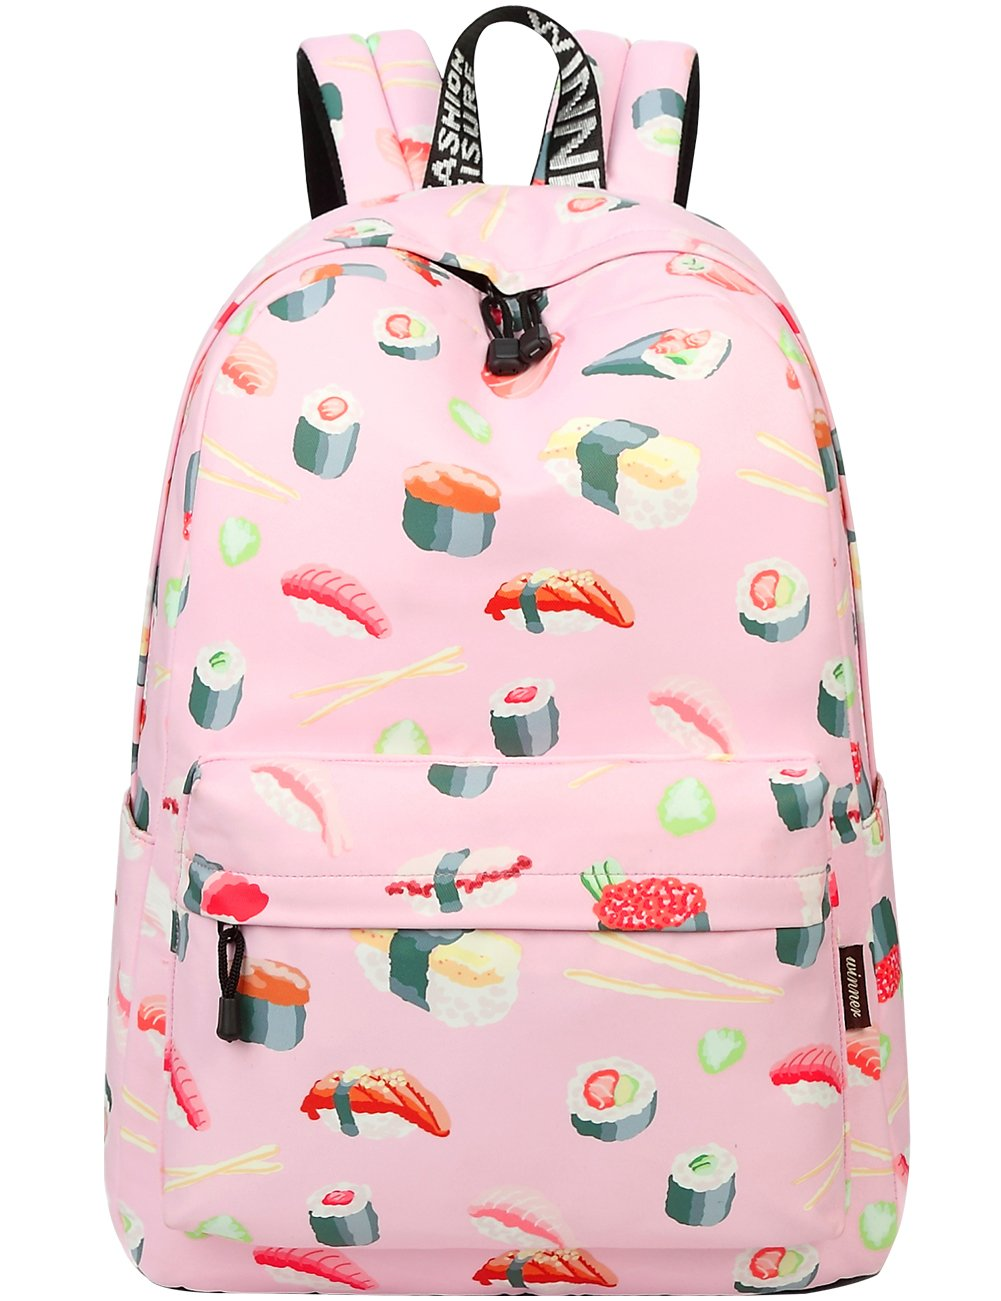 School Bookbags for Girls, Cute Sushi Backpack College Bags Women Daypack Travel Bag by Mygreen (Pink Sushi-Large)